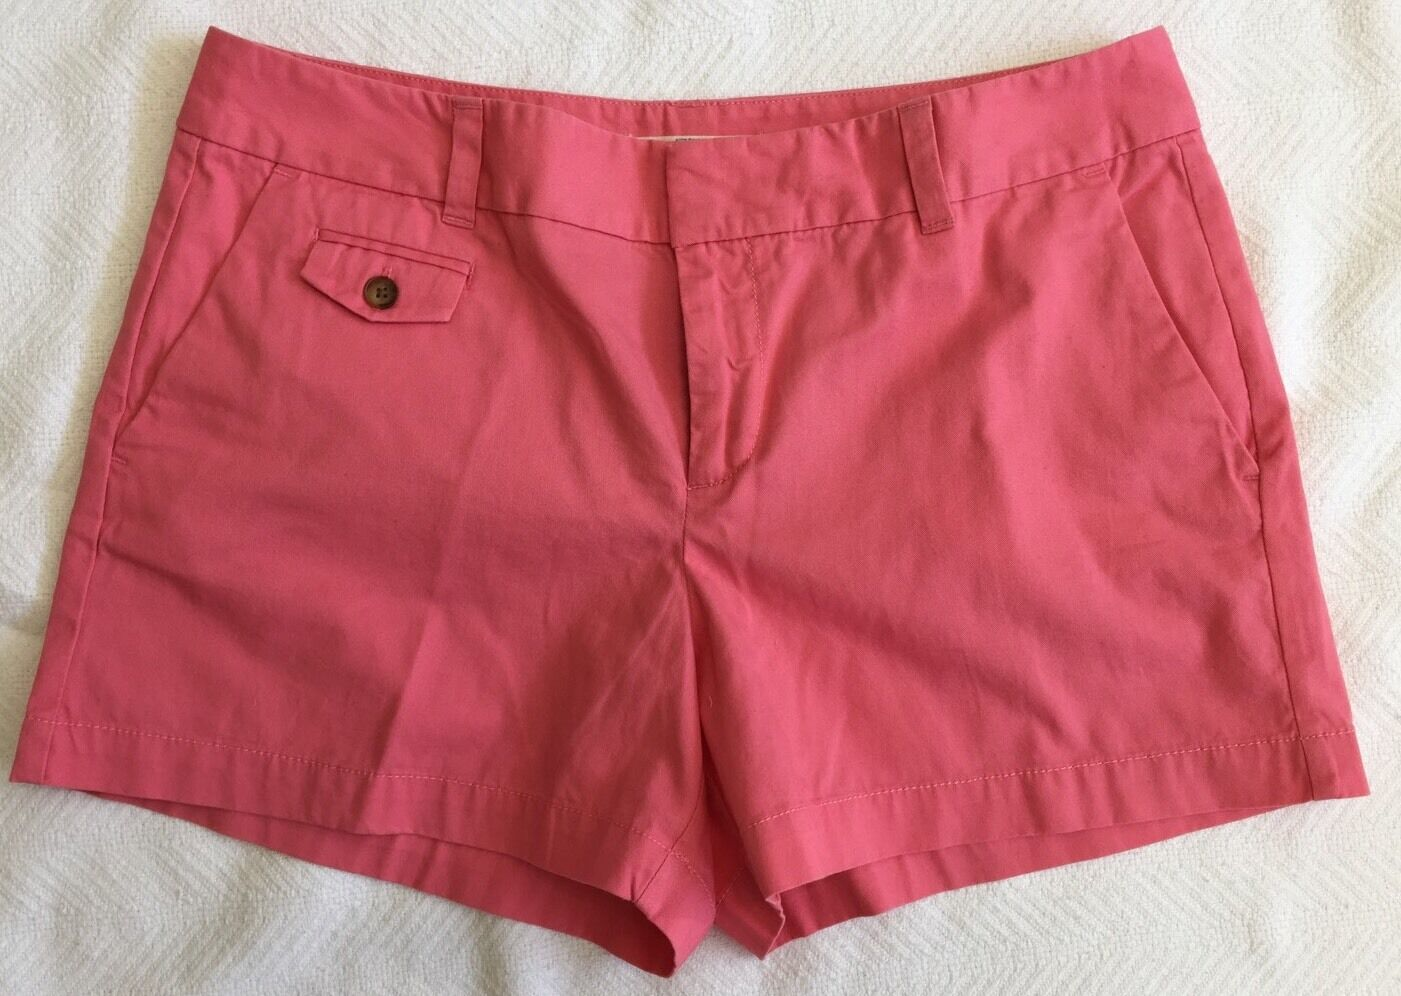 Loft Guava Pink Riviera Shorts With 4in Inseam Sz 8 NWOT